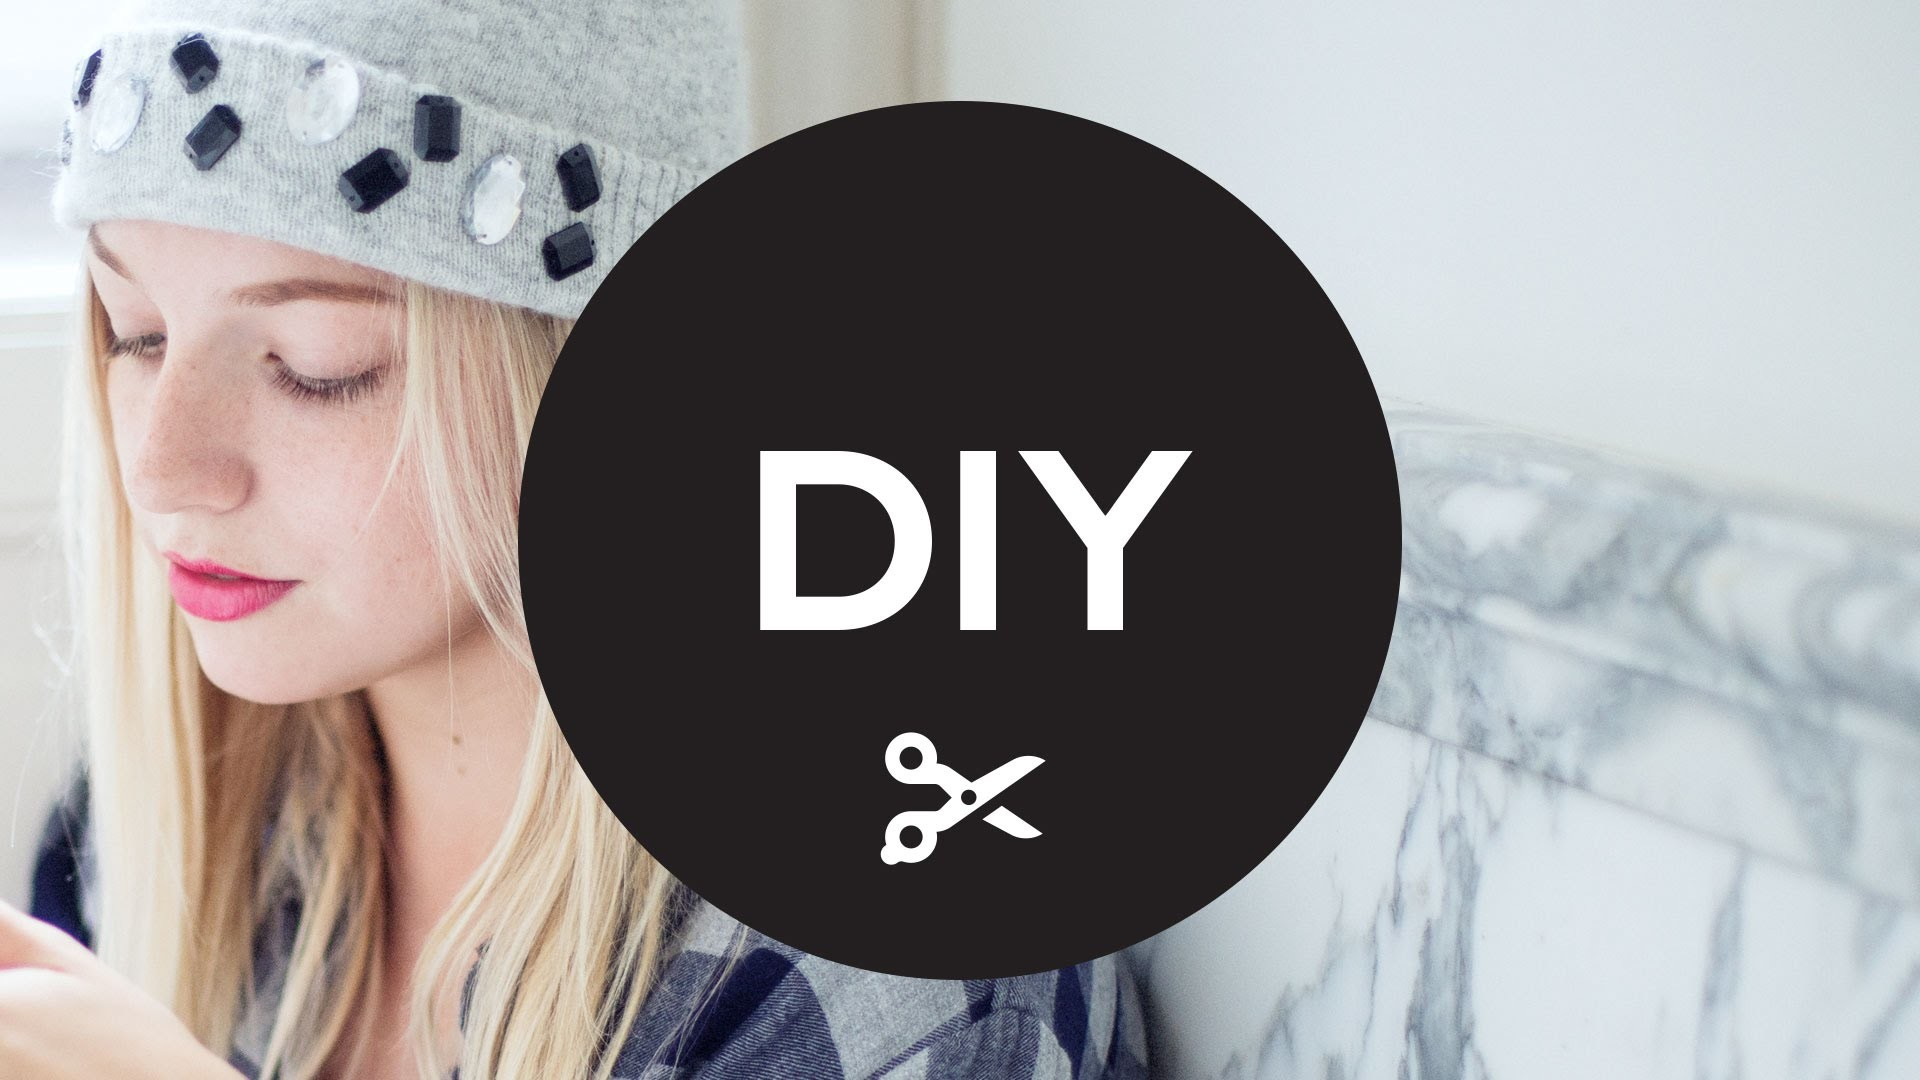 DIY: How to make your own bejeweled beanie